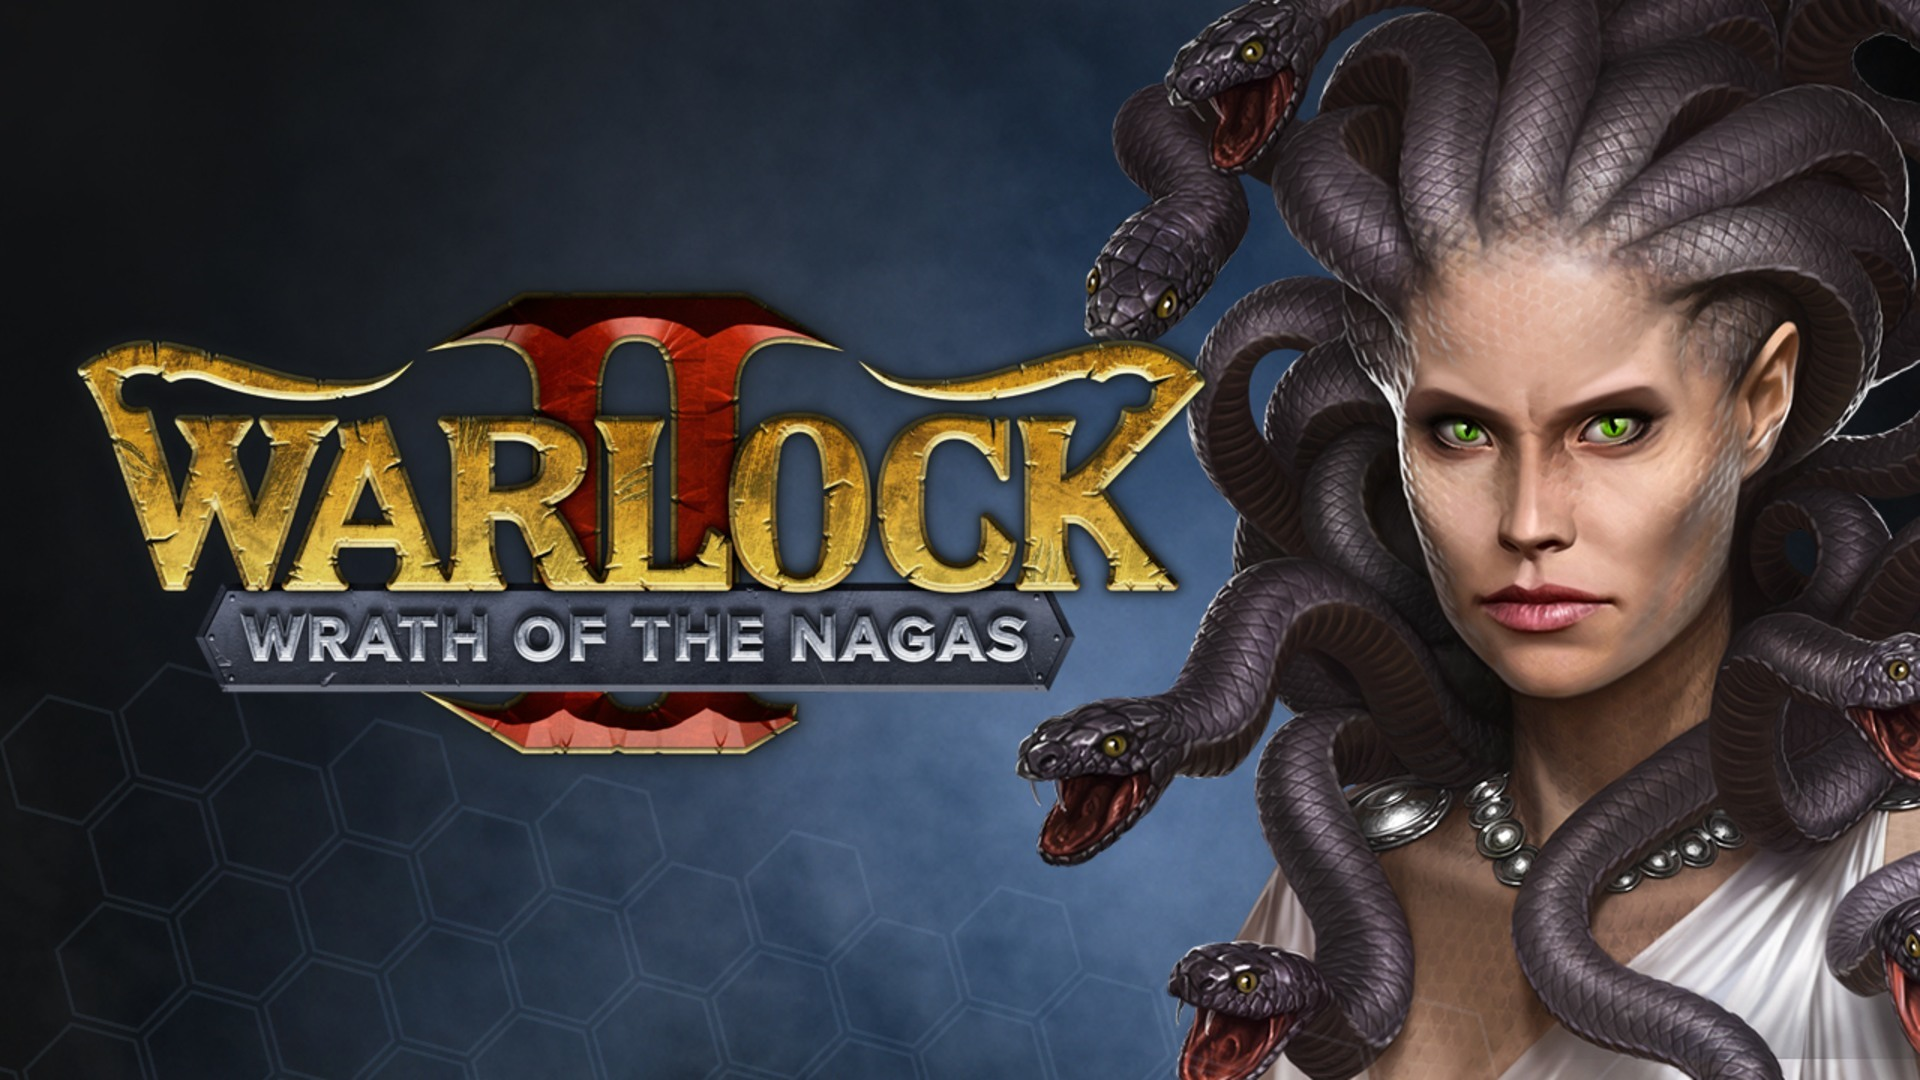 #Warlock 2 - Wrath of the Nagas (Expansion)